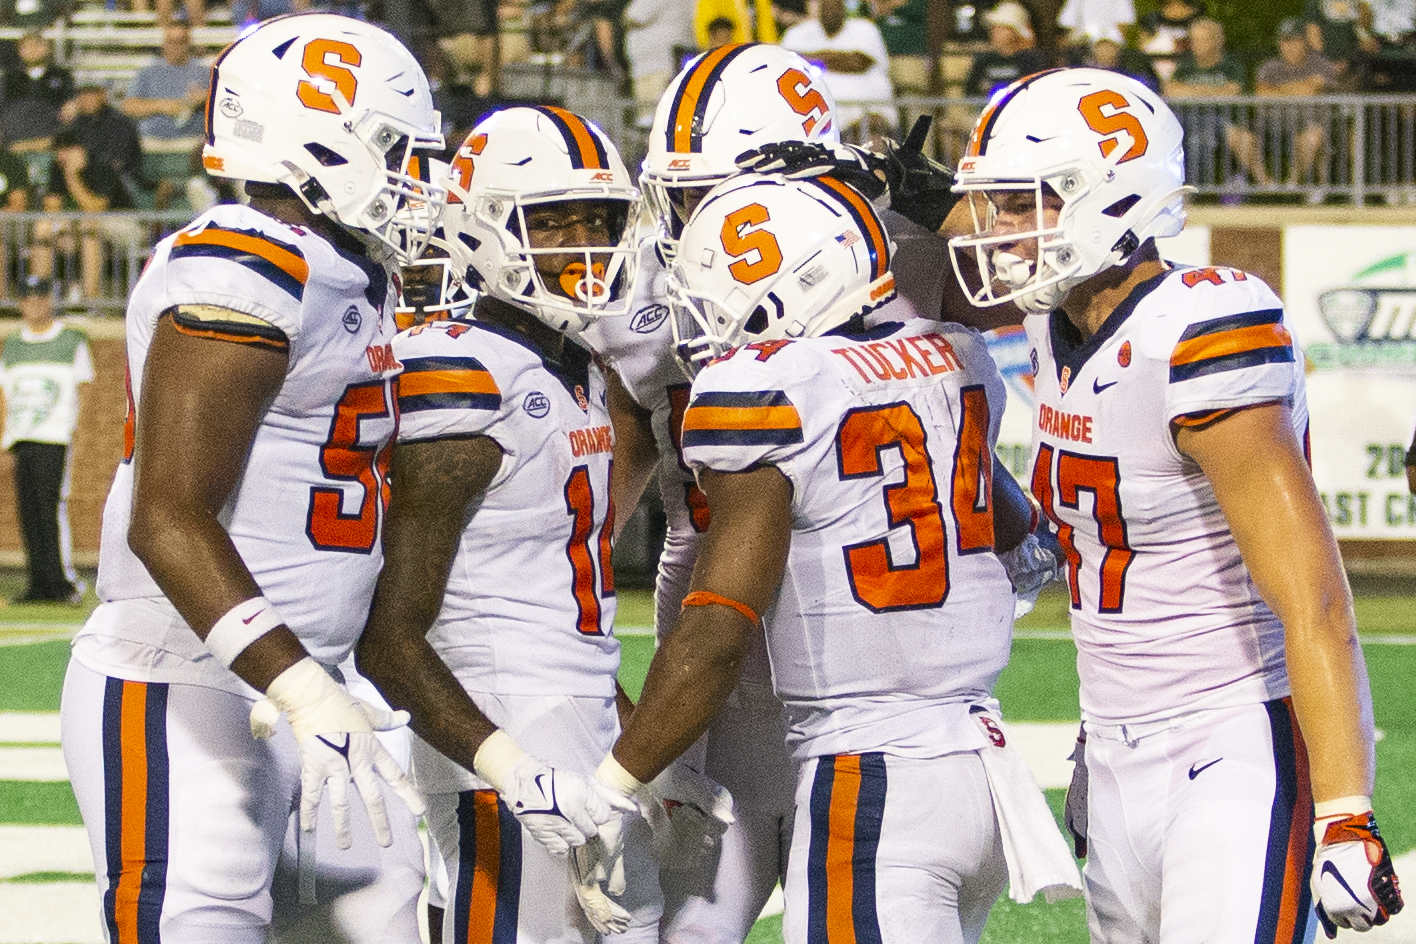 Syracuse's Orange players celebrate a touchdown during the Syracuse versus Ohio match in Athens, Ohio, on Saturday, Sep. 4, 2021. Syracuse won 29-9.